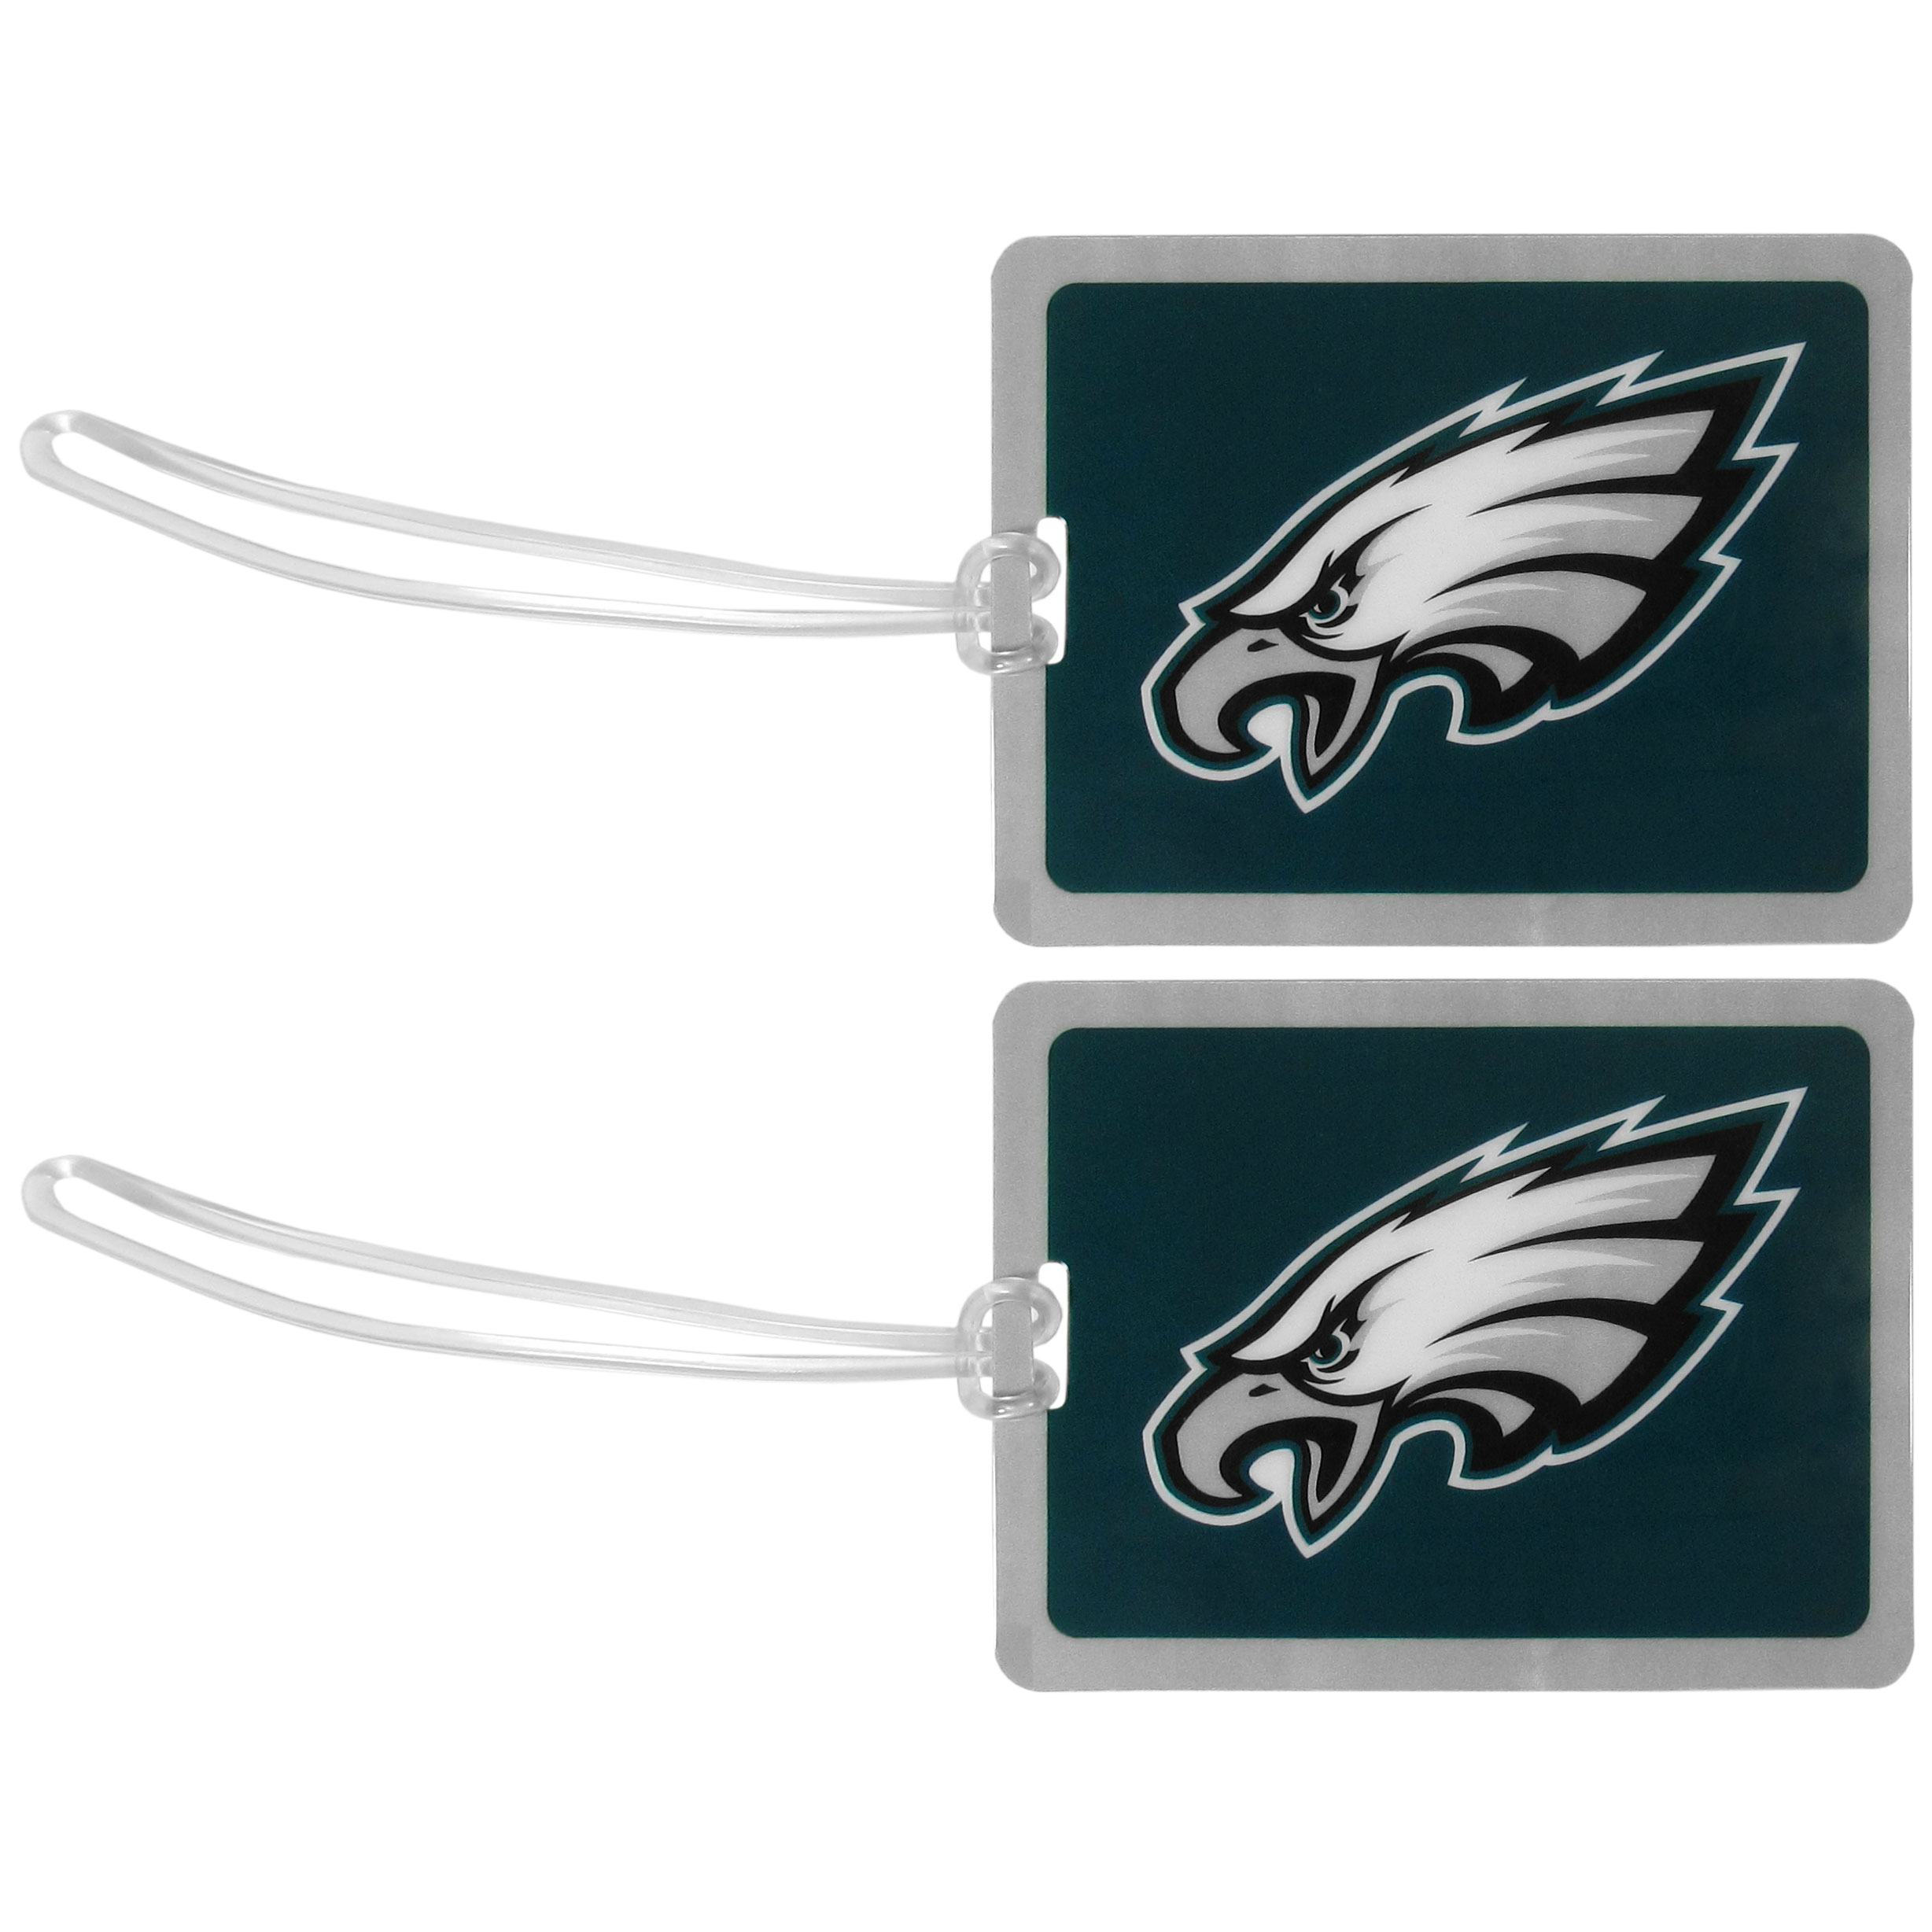 Philadelphia Eagles Vinyl Luggage Tag, 2pk - Tired of trying to spot your suitcase or bag in a sea of luggage? Try our large and colorful Philadelphia Eagles luggage tags. The tag is 4x3 inches and has a 5 inch cord to attach it easily to your bags, backpacks or luggage. The front of the tag features the team logo in a bright, team colored background and you can write you name, address and phone number on the back of the tag.